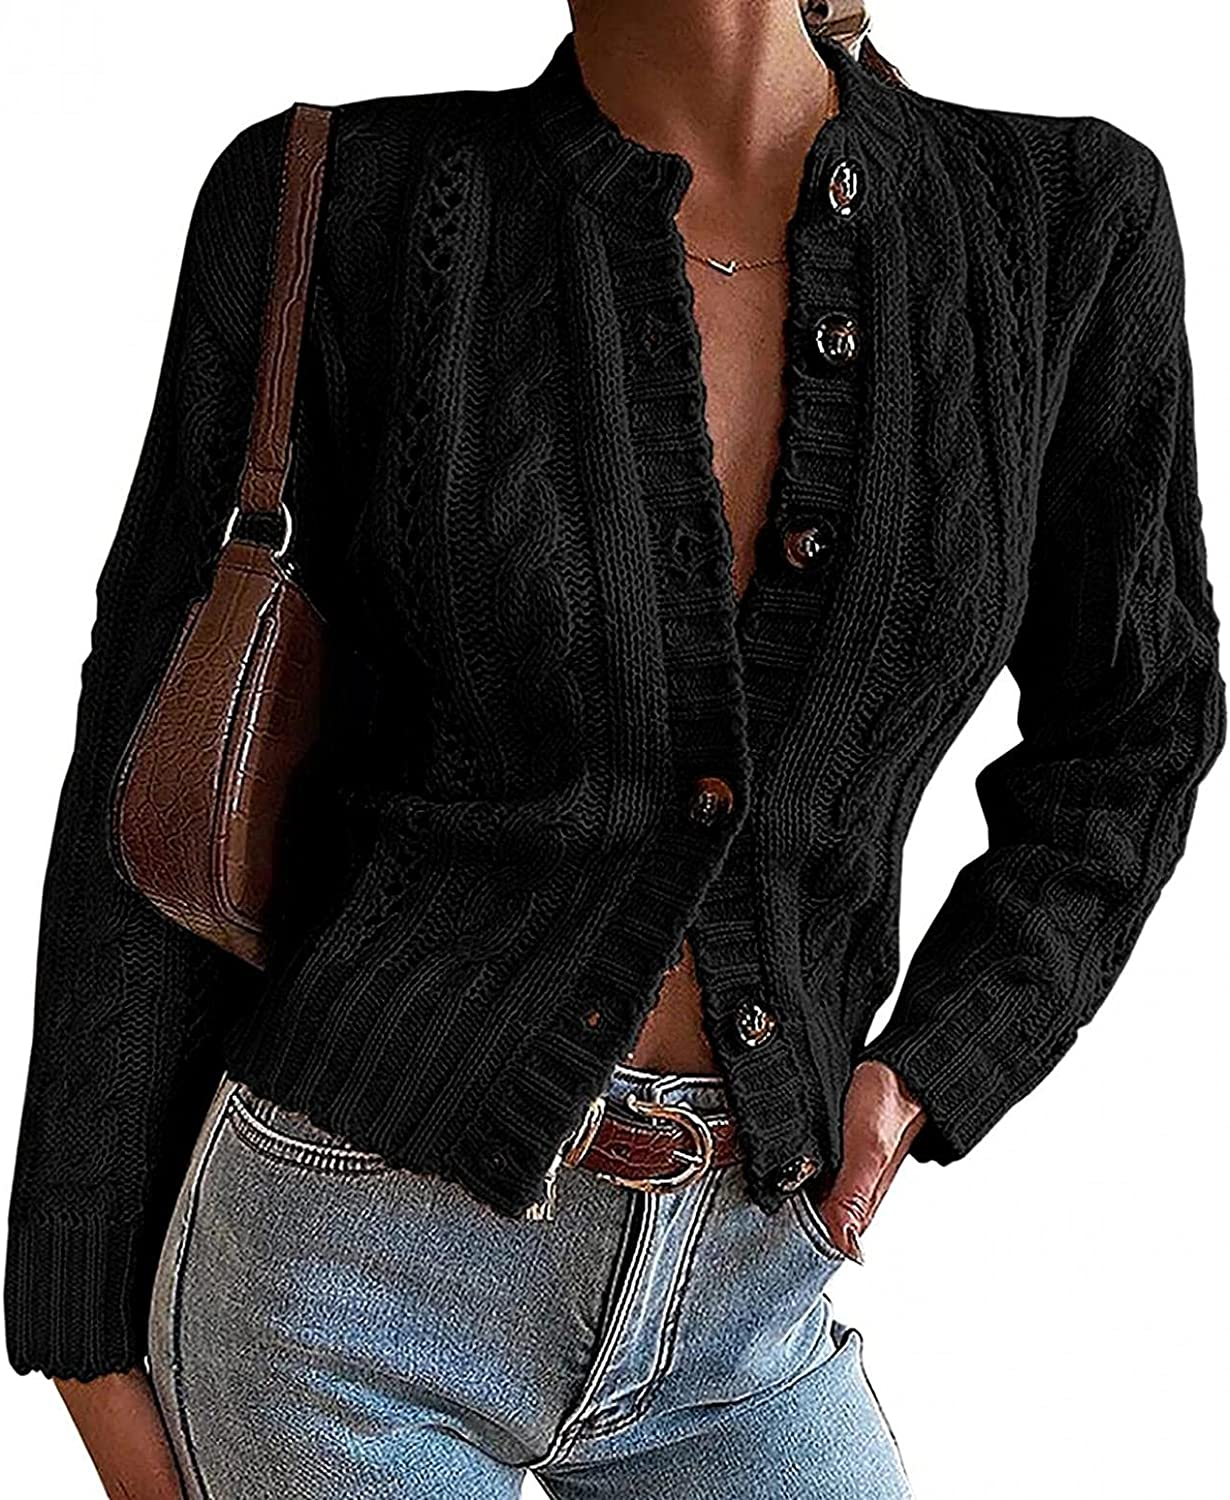 FGDJEE Cardigan Sweaters for Women Sexy Button Down Cropped Boho Open Front Long Sleeve Lightweight Cardigans